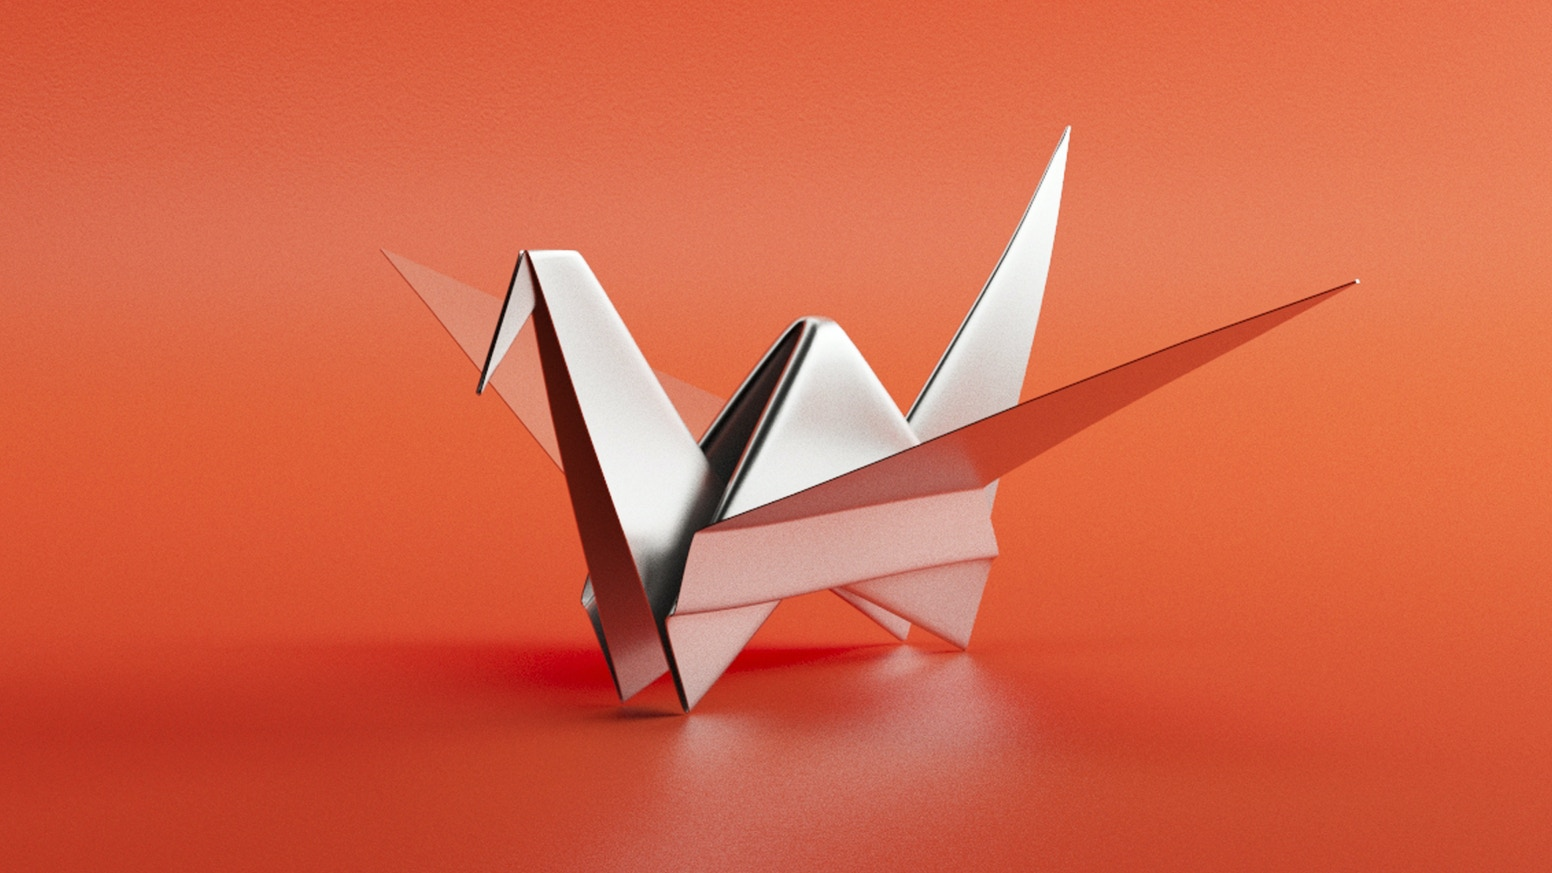 The Metal Origami Crane An Iconic Form Made From A Single Sheet Of Stainless Steel